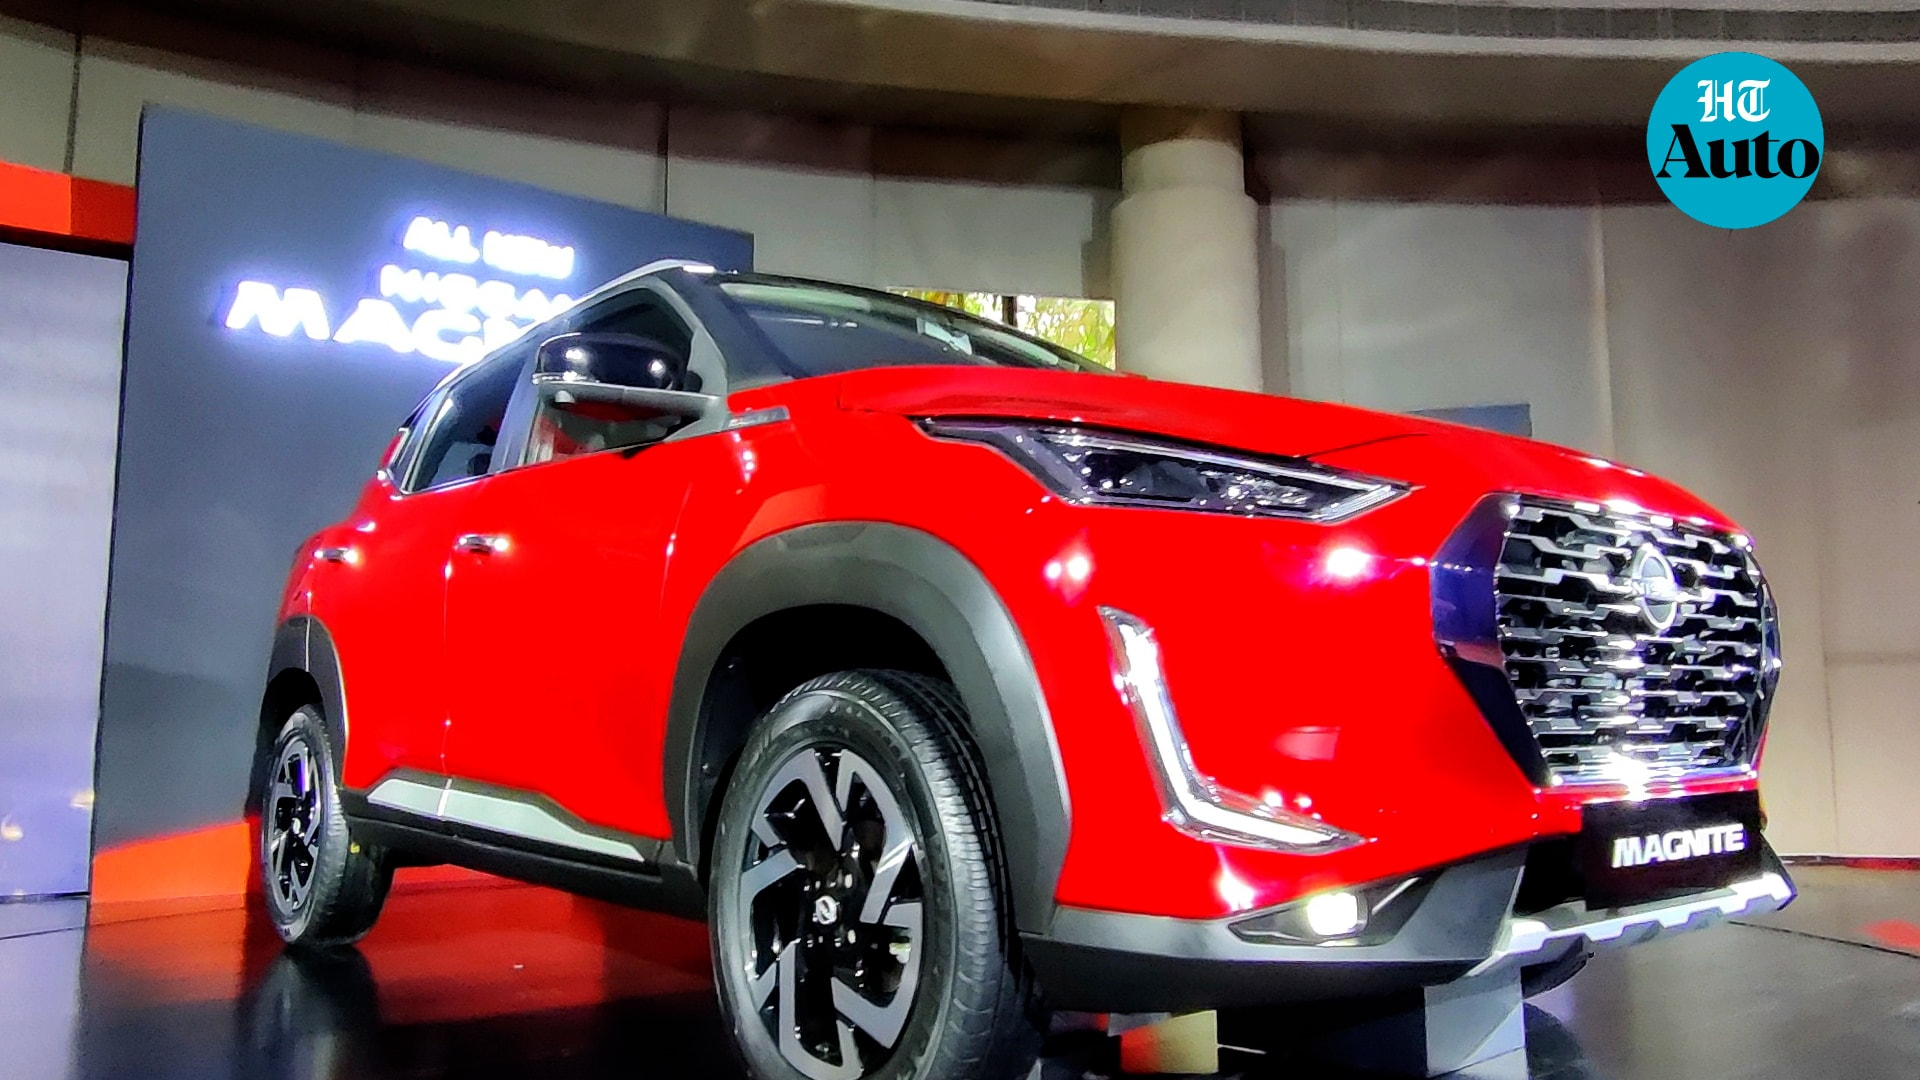 Nissan Magnite comes with a Turbo HTA0 engine option while buyers may also be able to choose from the company's much-acclaimed X-Tronic CVT transmission option. The SUV also claims to have the best-in-class turning radius of 5.0m. (HT Auto/Sabysachi Dasgupta)